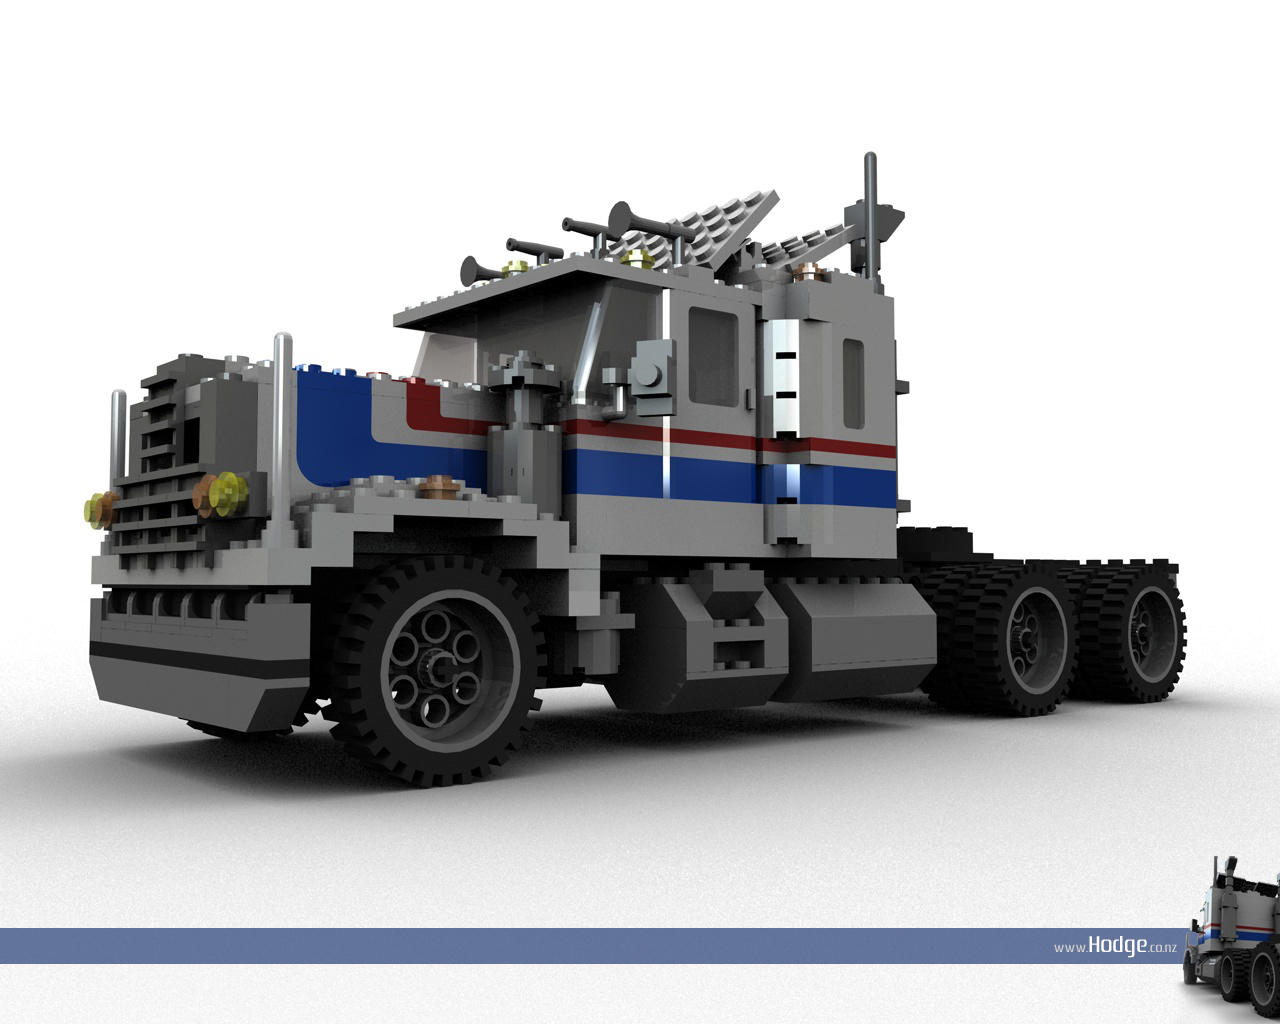 Lego Truck by L-X on DeviantArt - 362.2KB